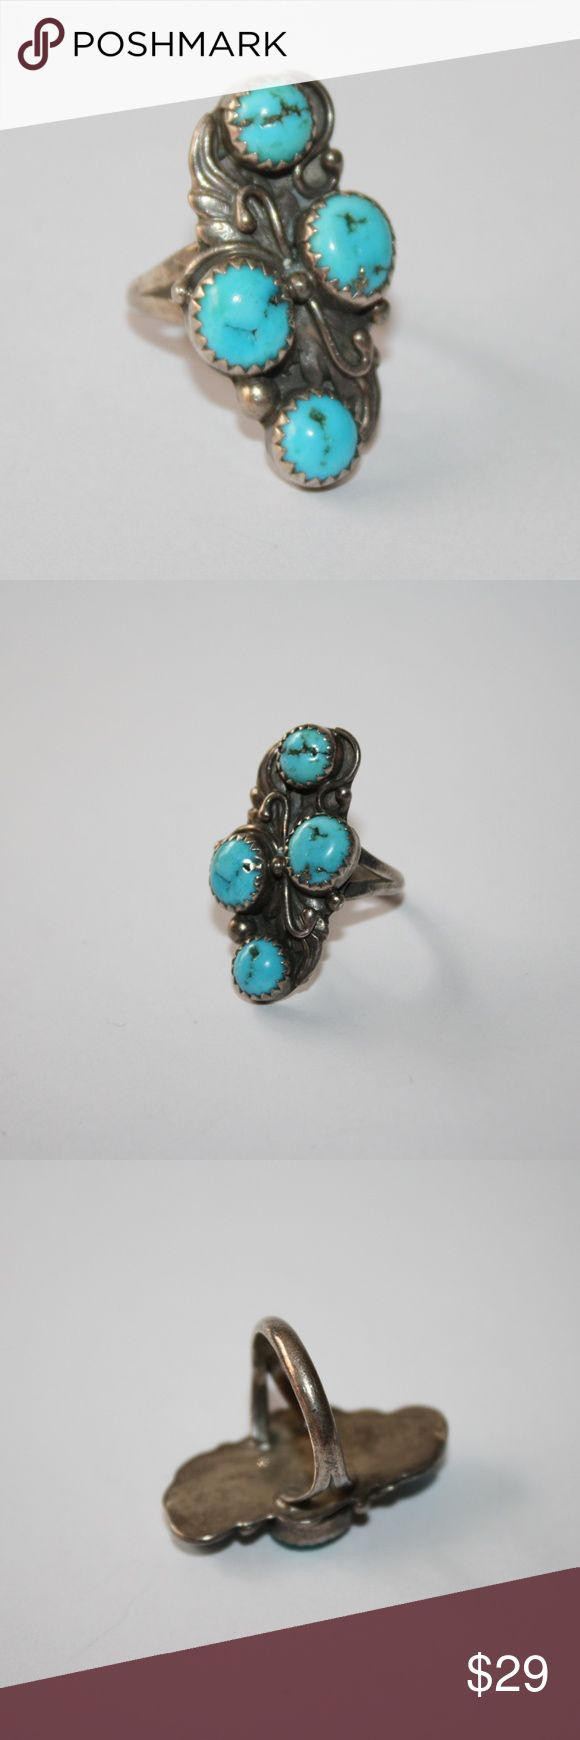 Sterling silver and turquoise ring, size 5 Beautiful sterling silver ring, Tested. size 5.  Buy from me with confidence! I have sold over 150 items with a 5 star rating! If you have any questions, do not hesitate to ask.  Looking at a few things in my shop? Put a bundle together, comment on an item that you are ready to check out and let me send you an even better offer!  Thank you for visiting :) Free gifts with every purchase! Jewelry Rings